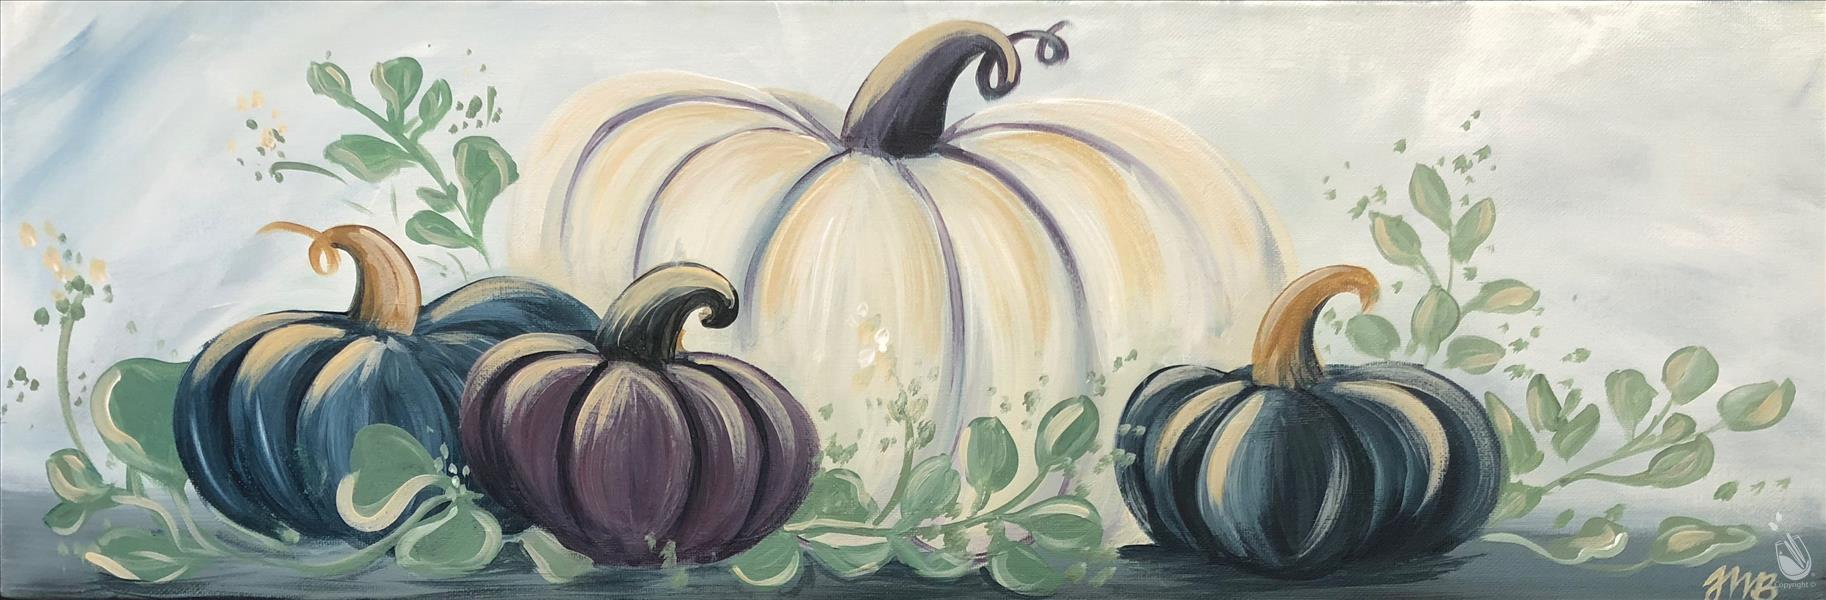 Pumpkins and Eucalyptus